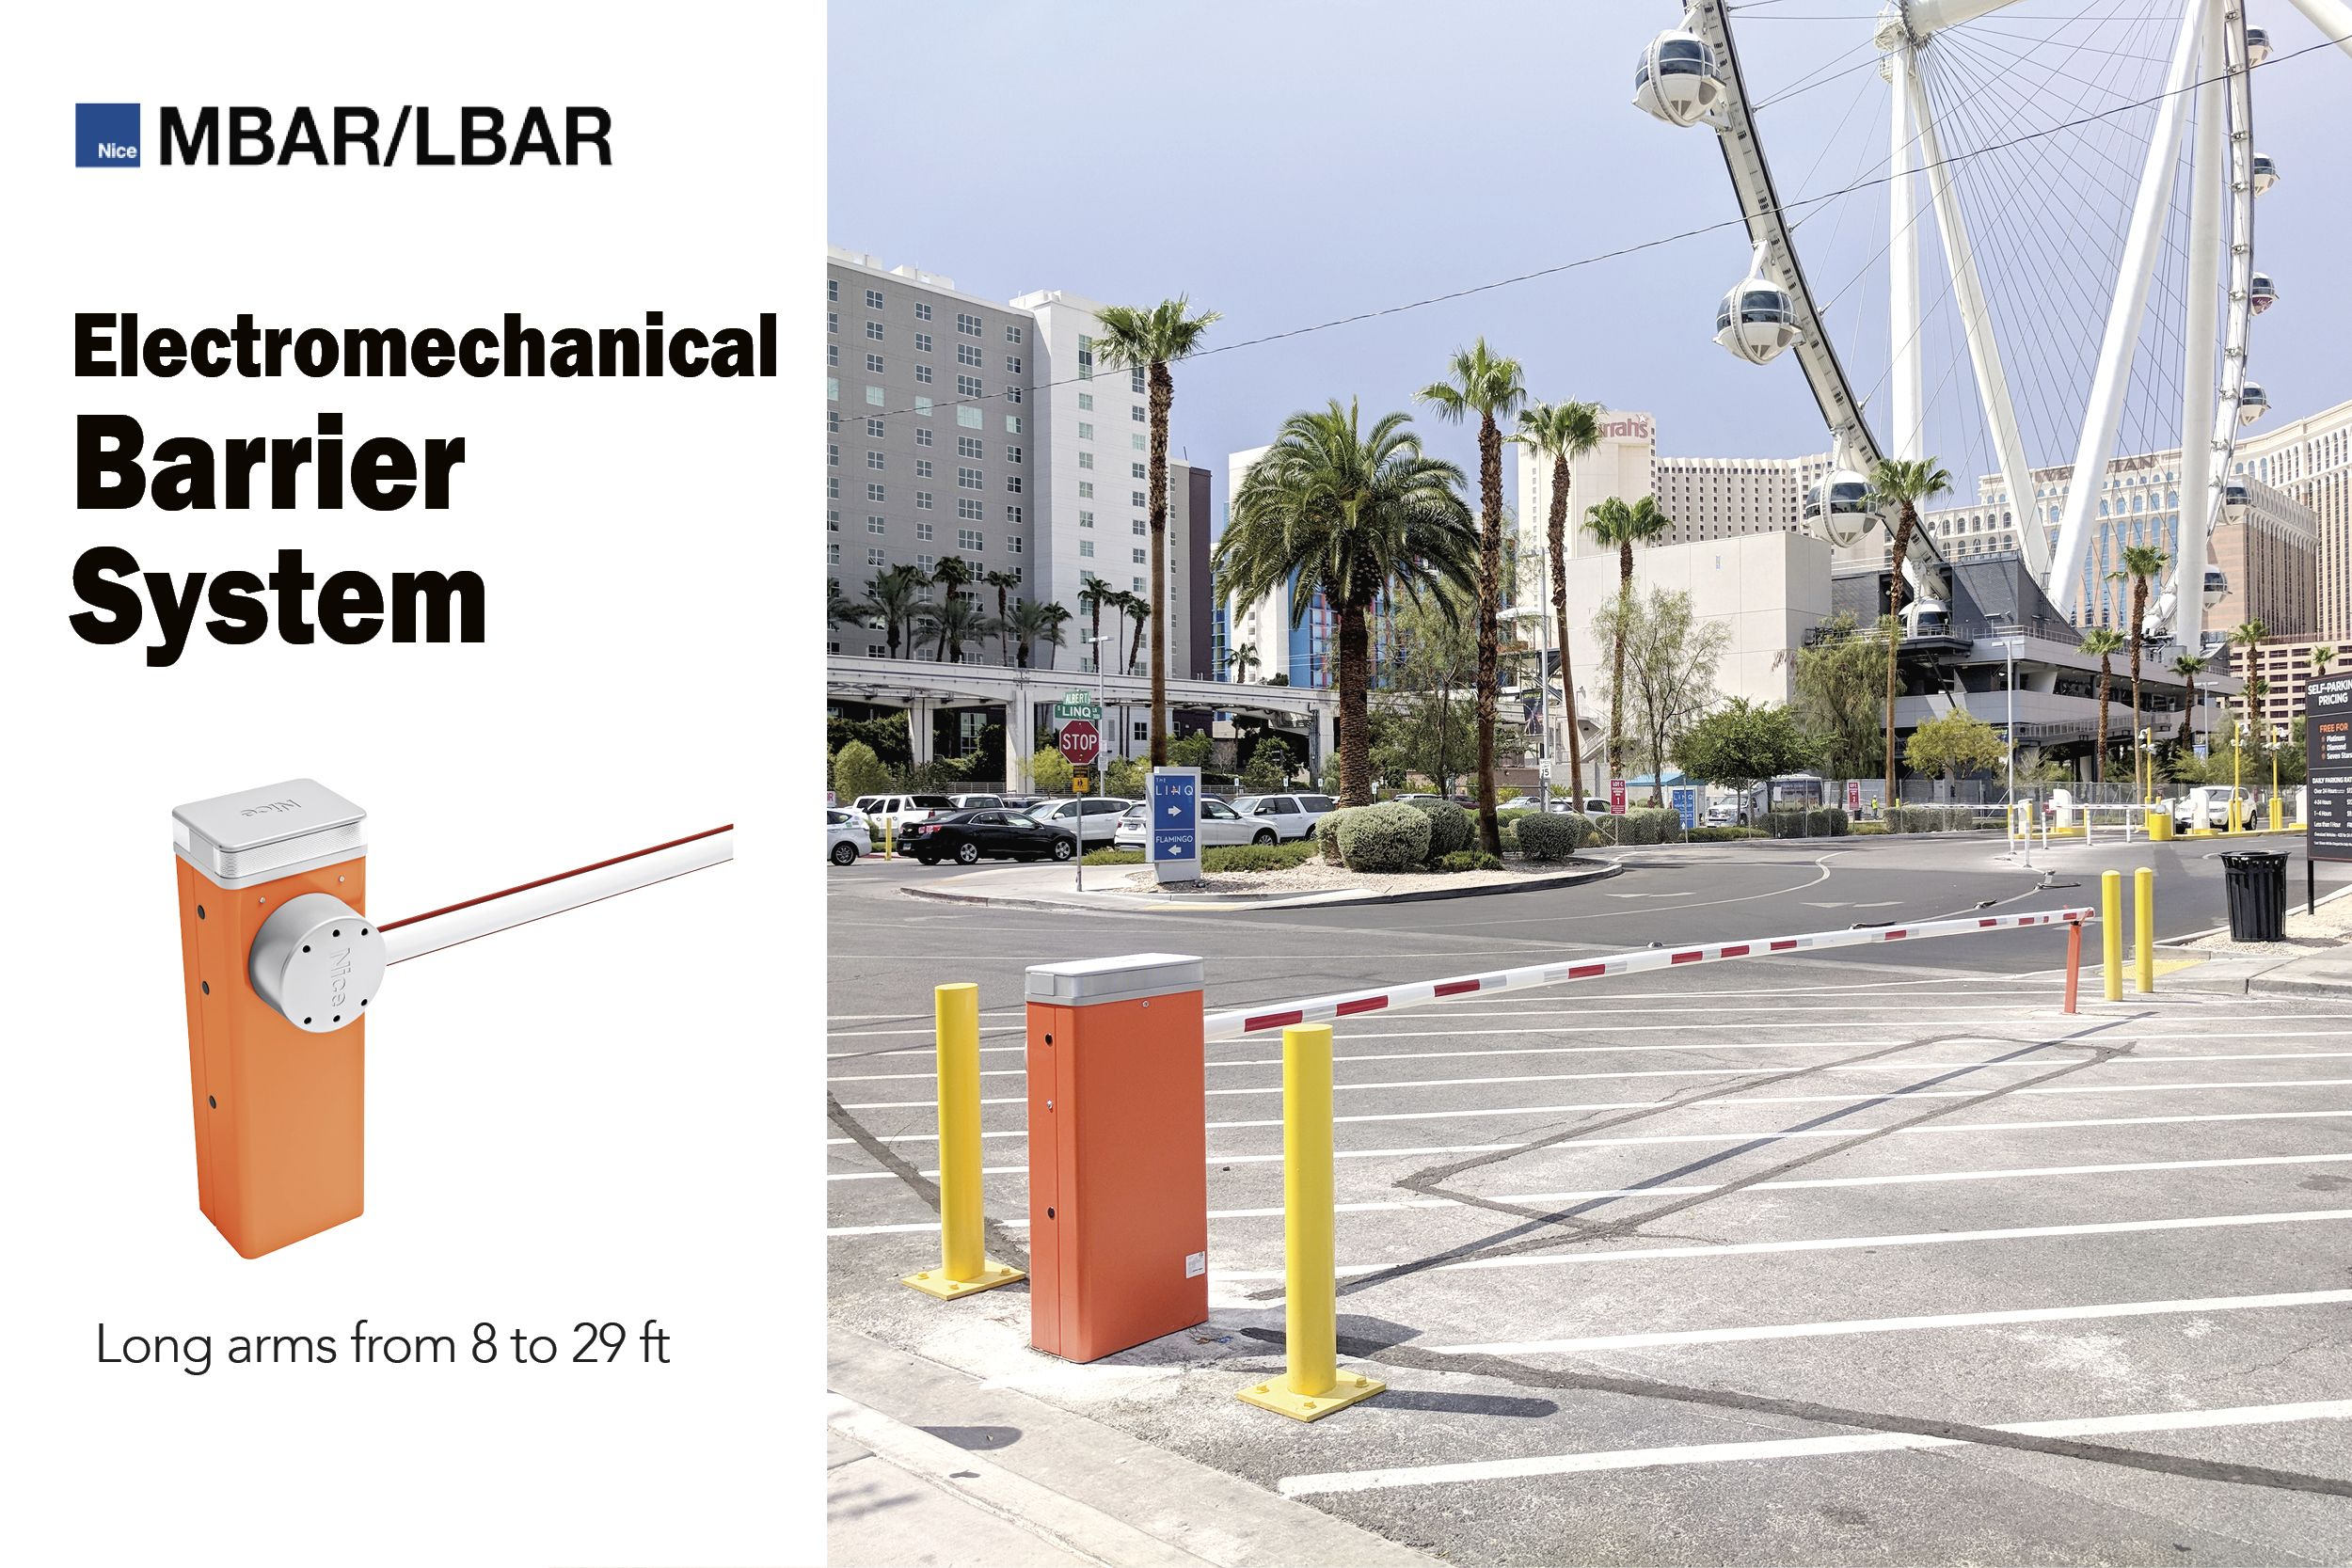 Nice MBAR - electromechanical barrier system for road access